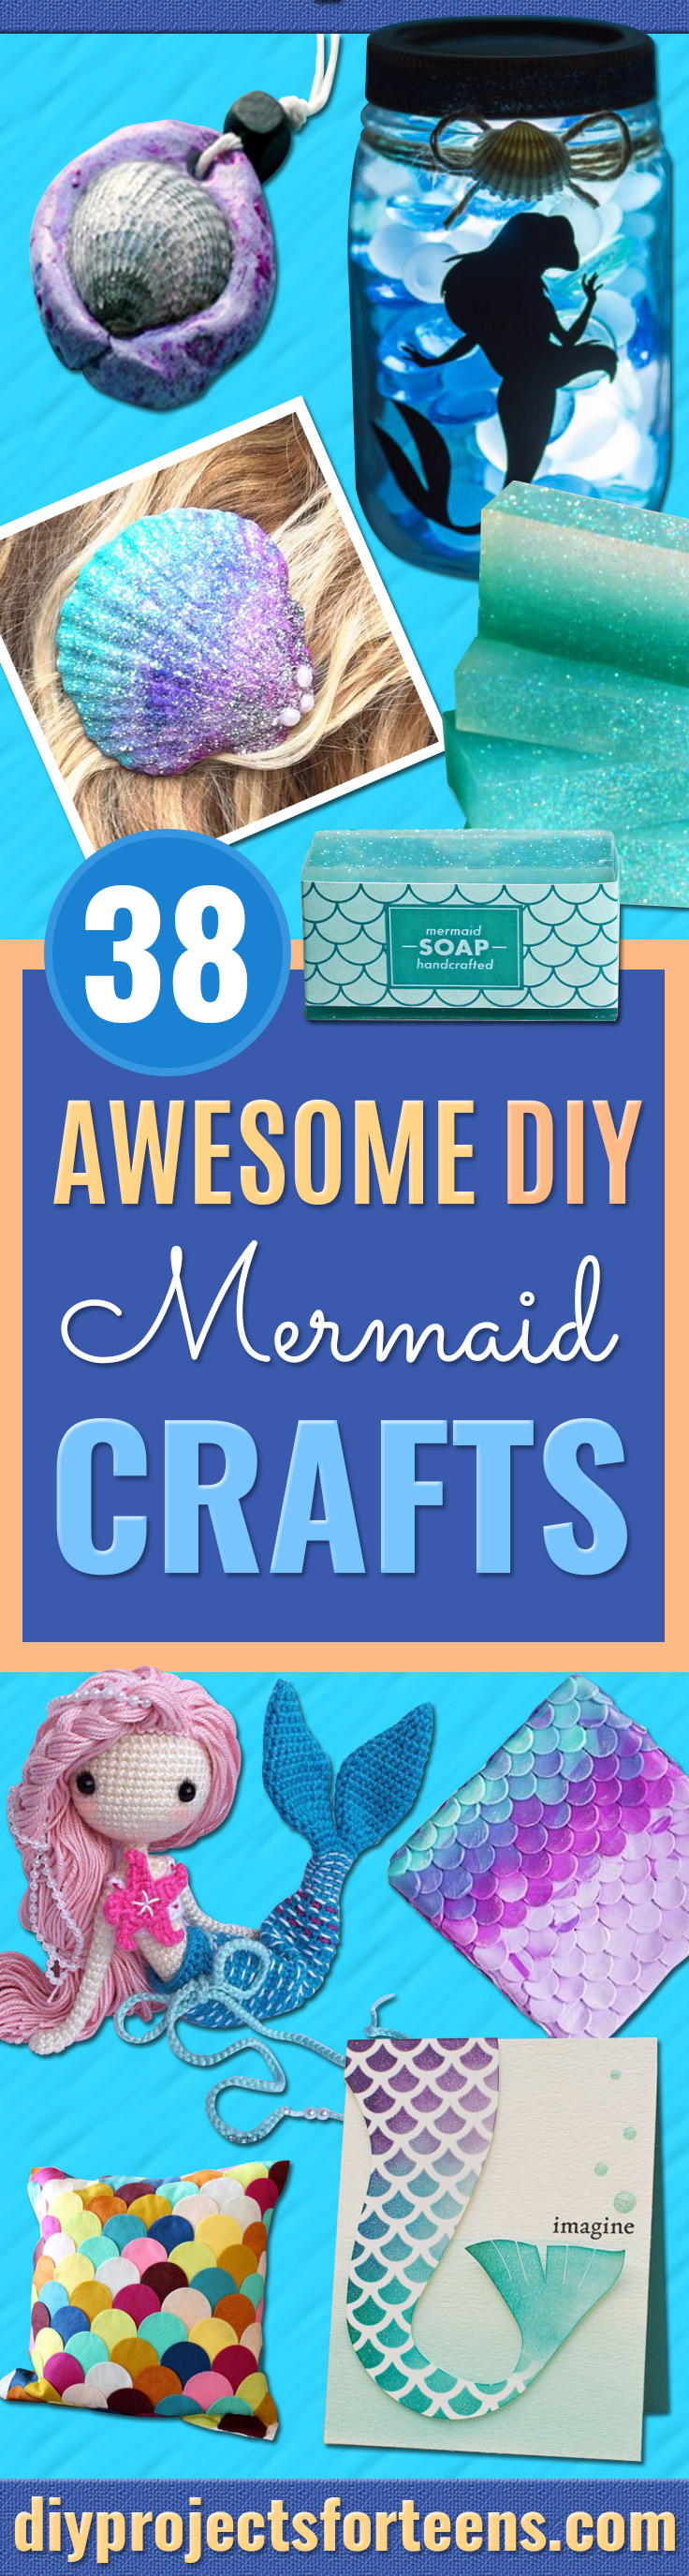 DIY Mermaid Crafts - 30 Minute Mermaid Skirt - How To Make Room Decorations, Art Projects, Jewelry, and Makeup For Kids, Teens and Teenagers - Mermaid Costume Tutorials - Fun Clothes, Pillow Projects, Mermaid Tail Tutorial http://diyprojectsforteens.com/diy-mermaid-crafts